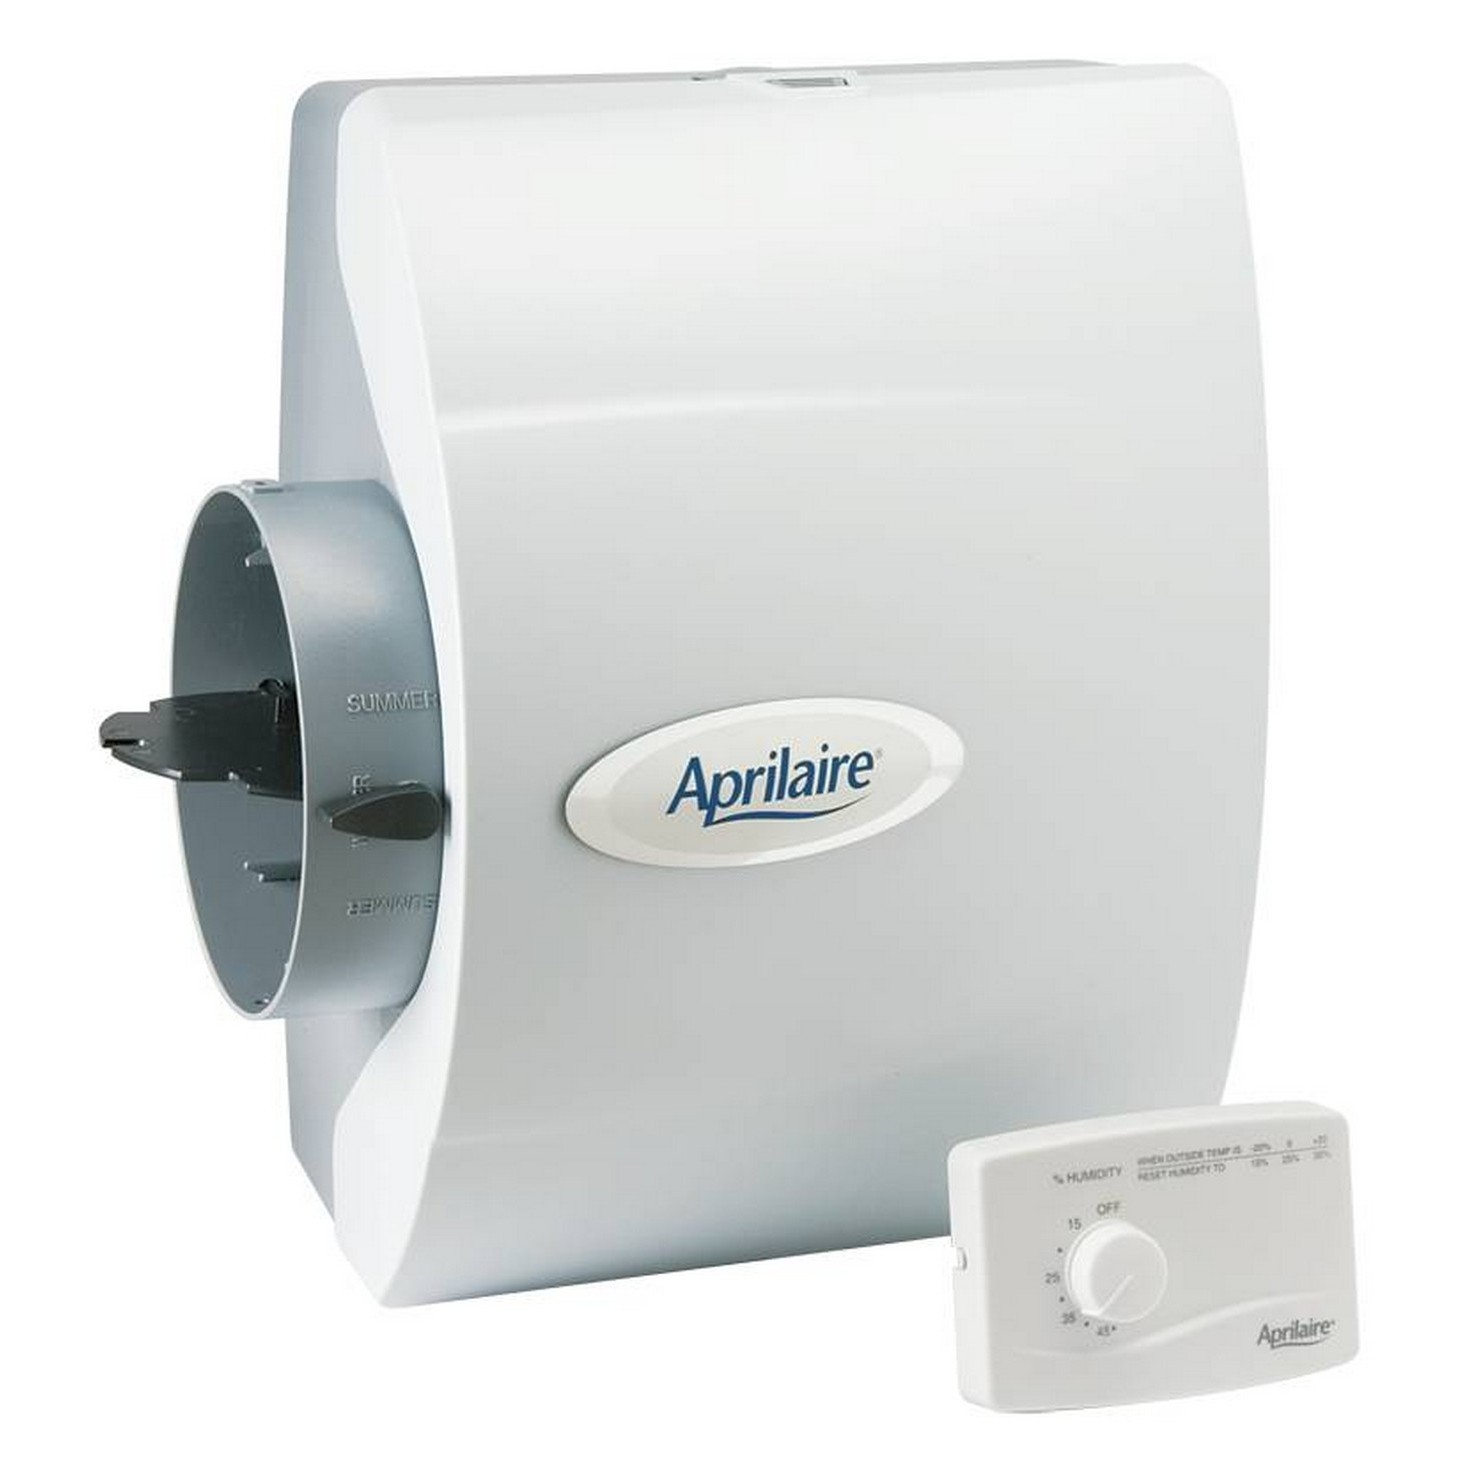 Details about Aprilaire 600M Whole House Humidifier #364C5B